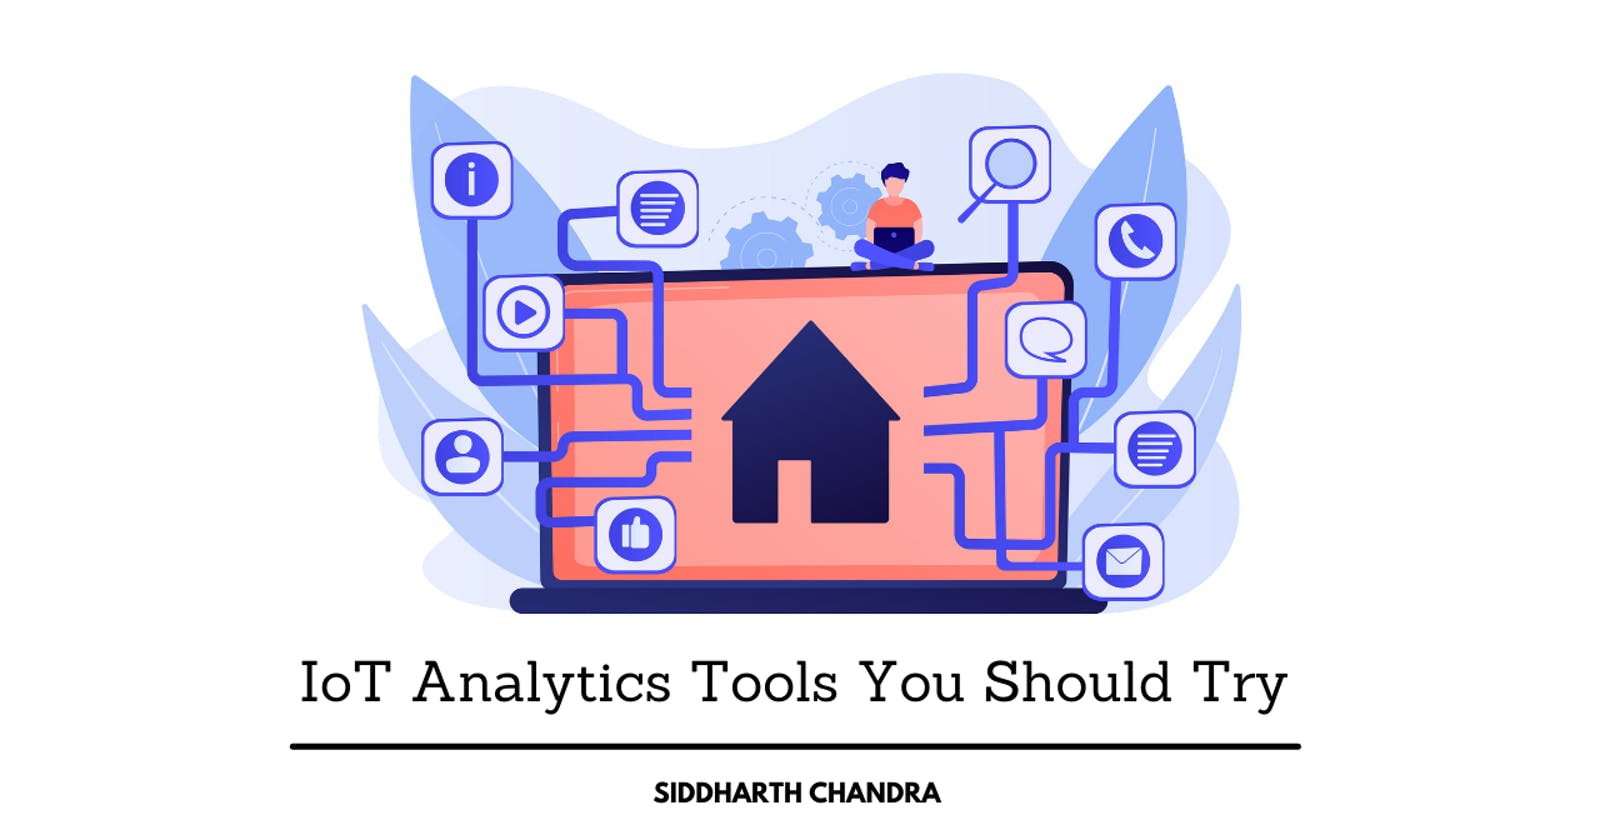 IoT Analytics Tools You Should Try